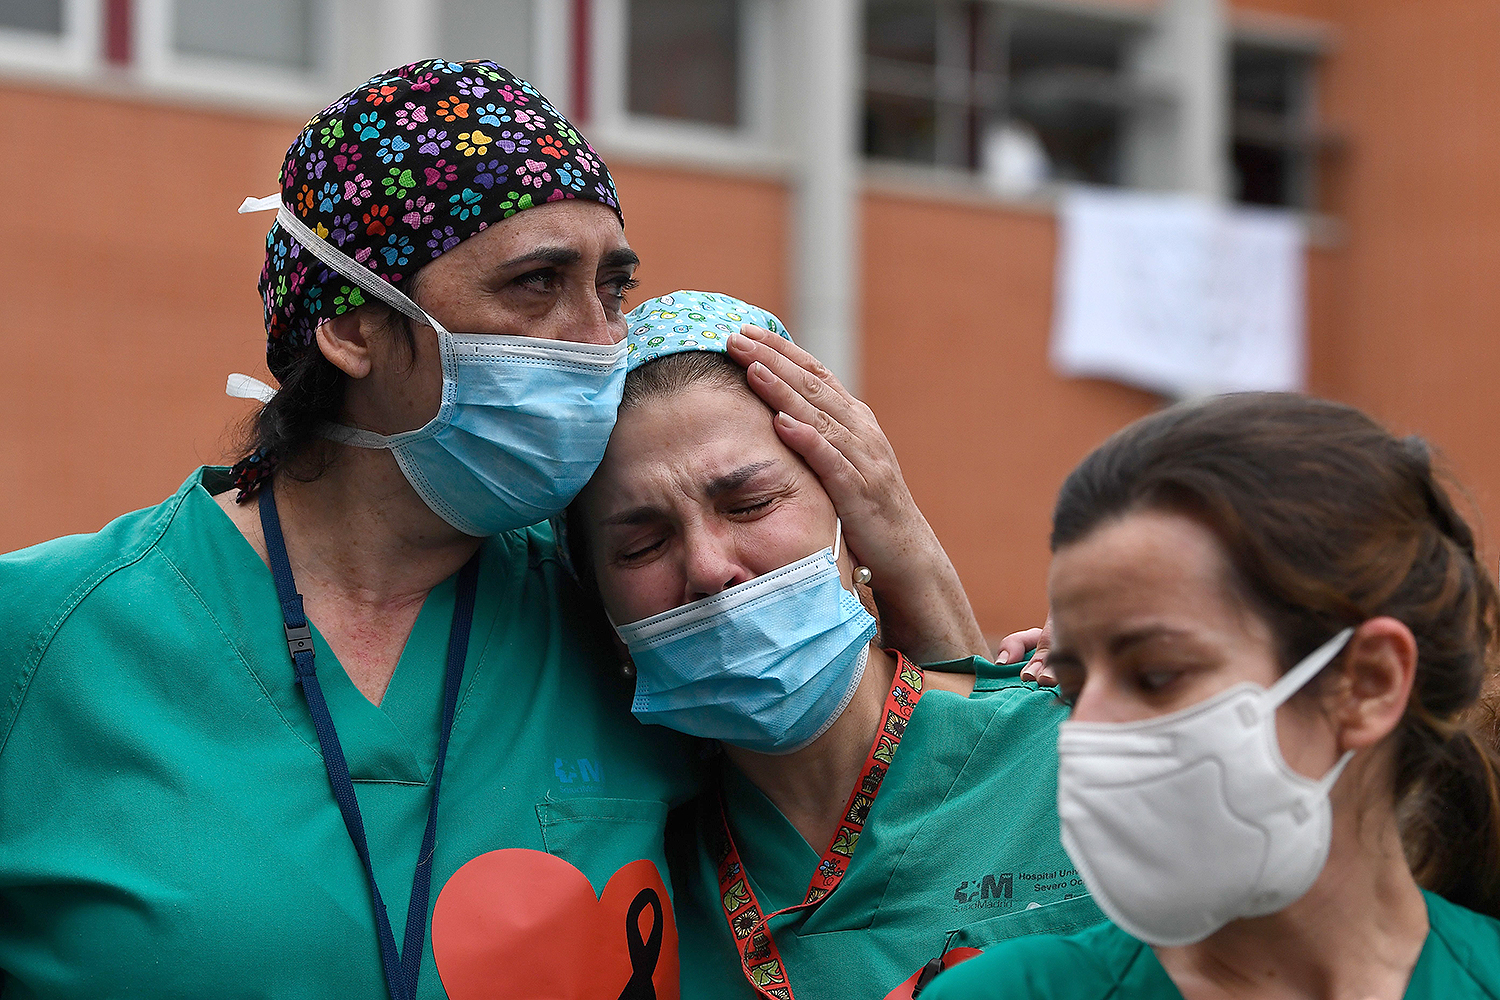 On April 10, health care workers mourn their co-worker Esteban, a nurse who died of the coronavirus at Severo Ochoa Hospital in Leganes, Spain. PIERRE-PHILIPPE MARCOU/AFP via Getty Images